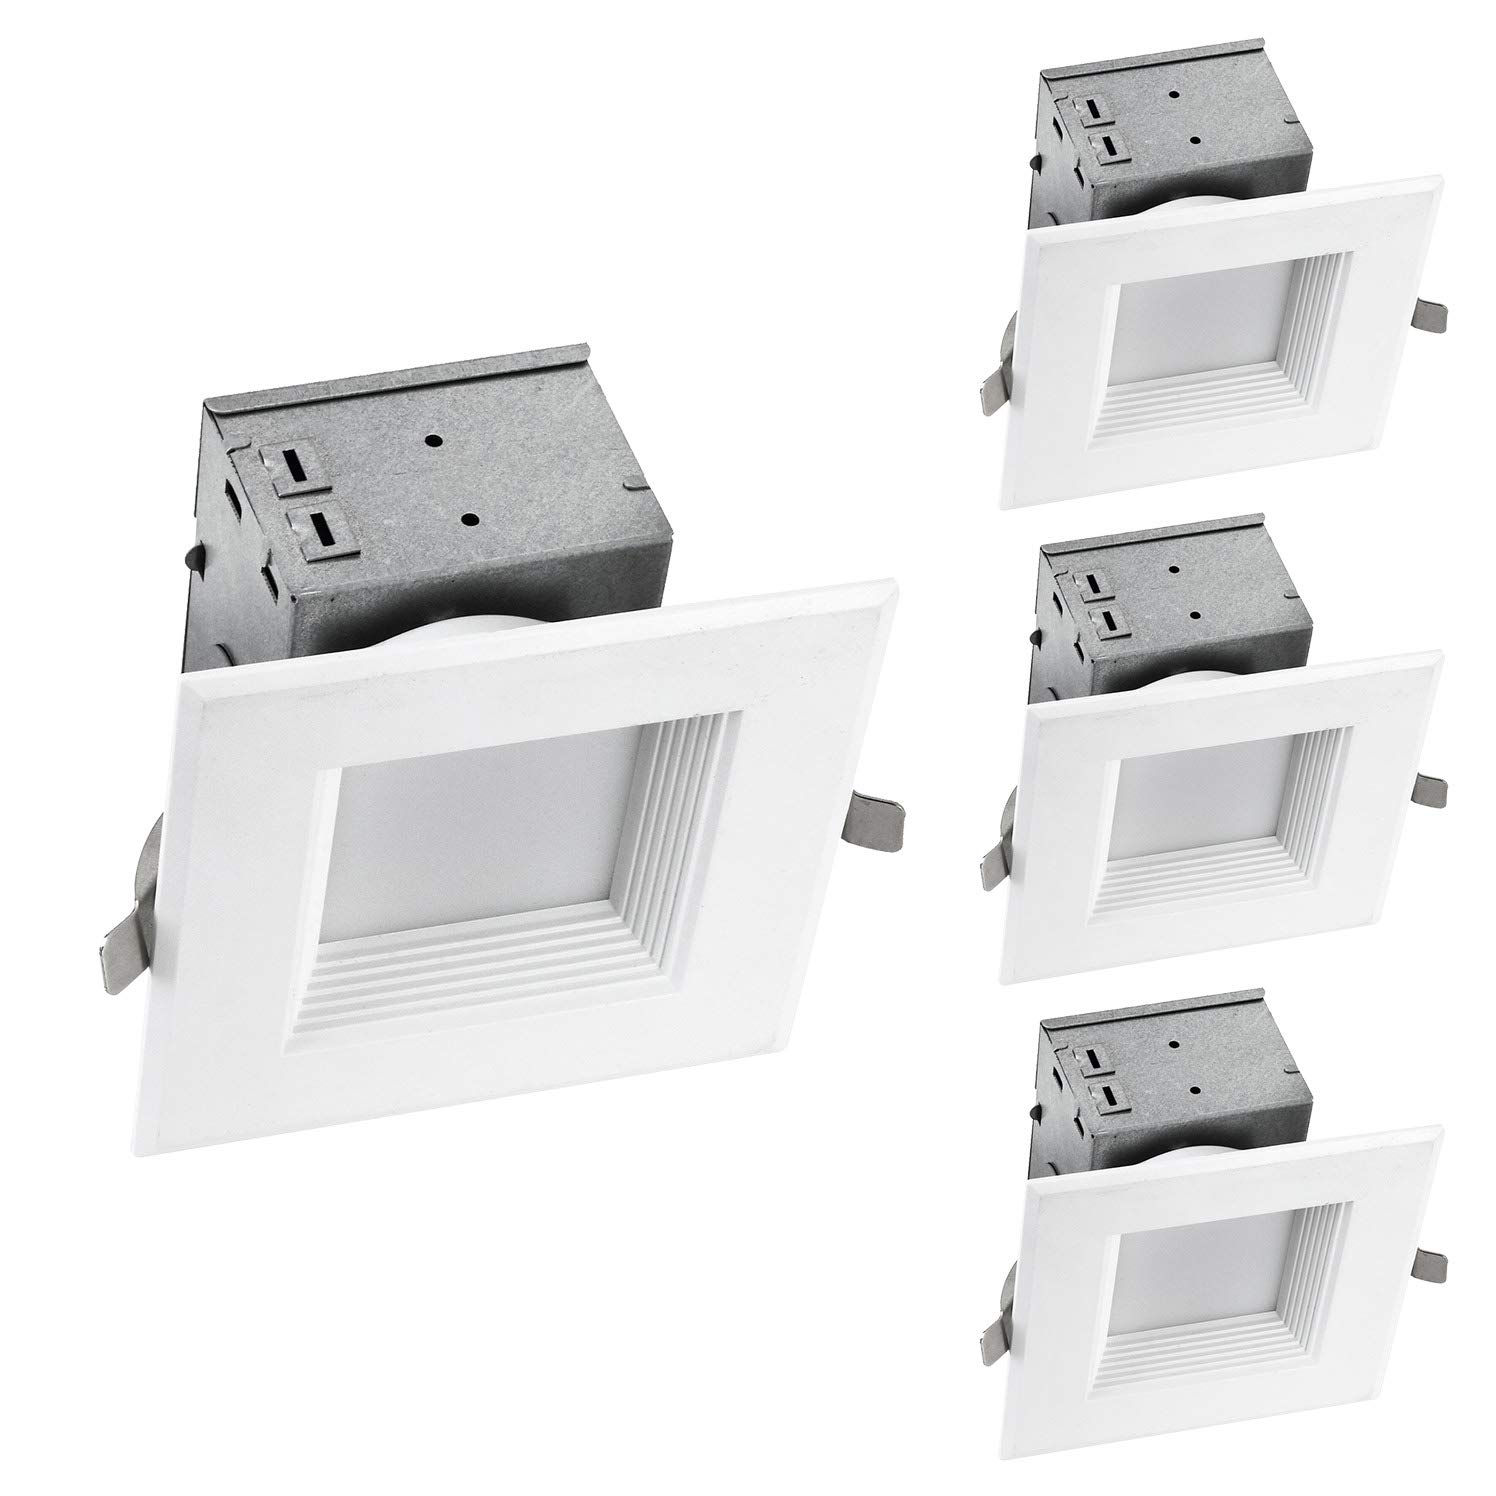 OSTWIN (4 Pack) 4 Inch Square LED Recessed Lighting Junction Box Dimmable LED Recessed Downlight IC Rated 10W (75W Repl) 4000K, 700Lm, Lighting for offices, stores, hotels, ETL and Energy Star Listed